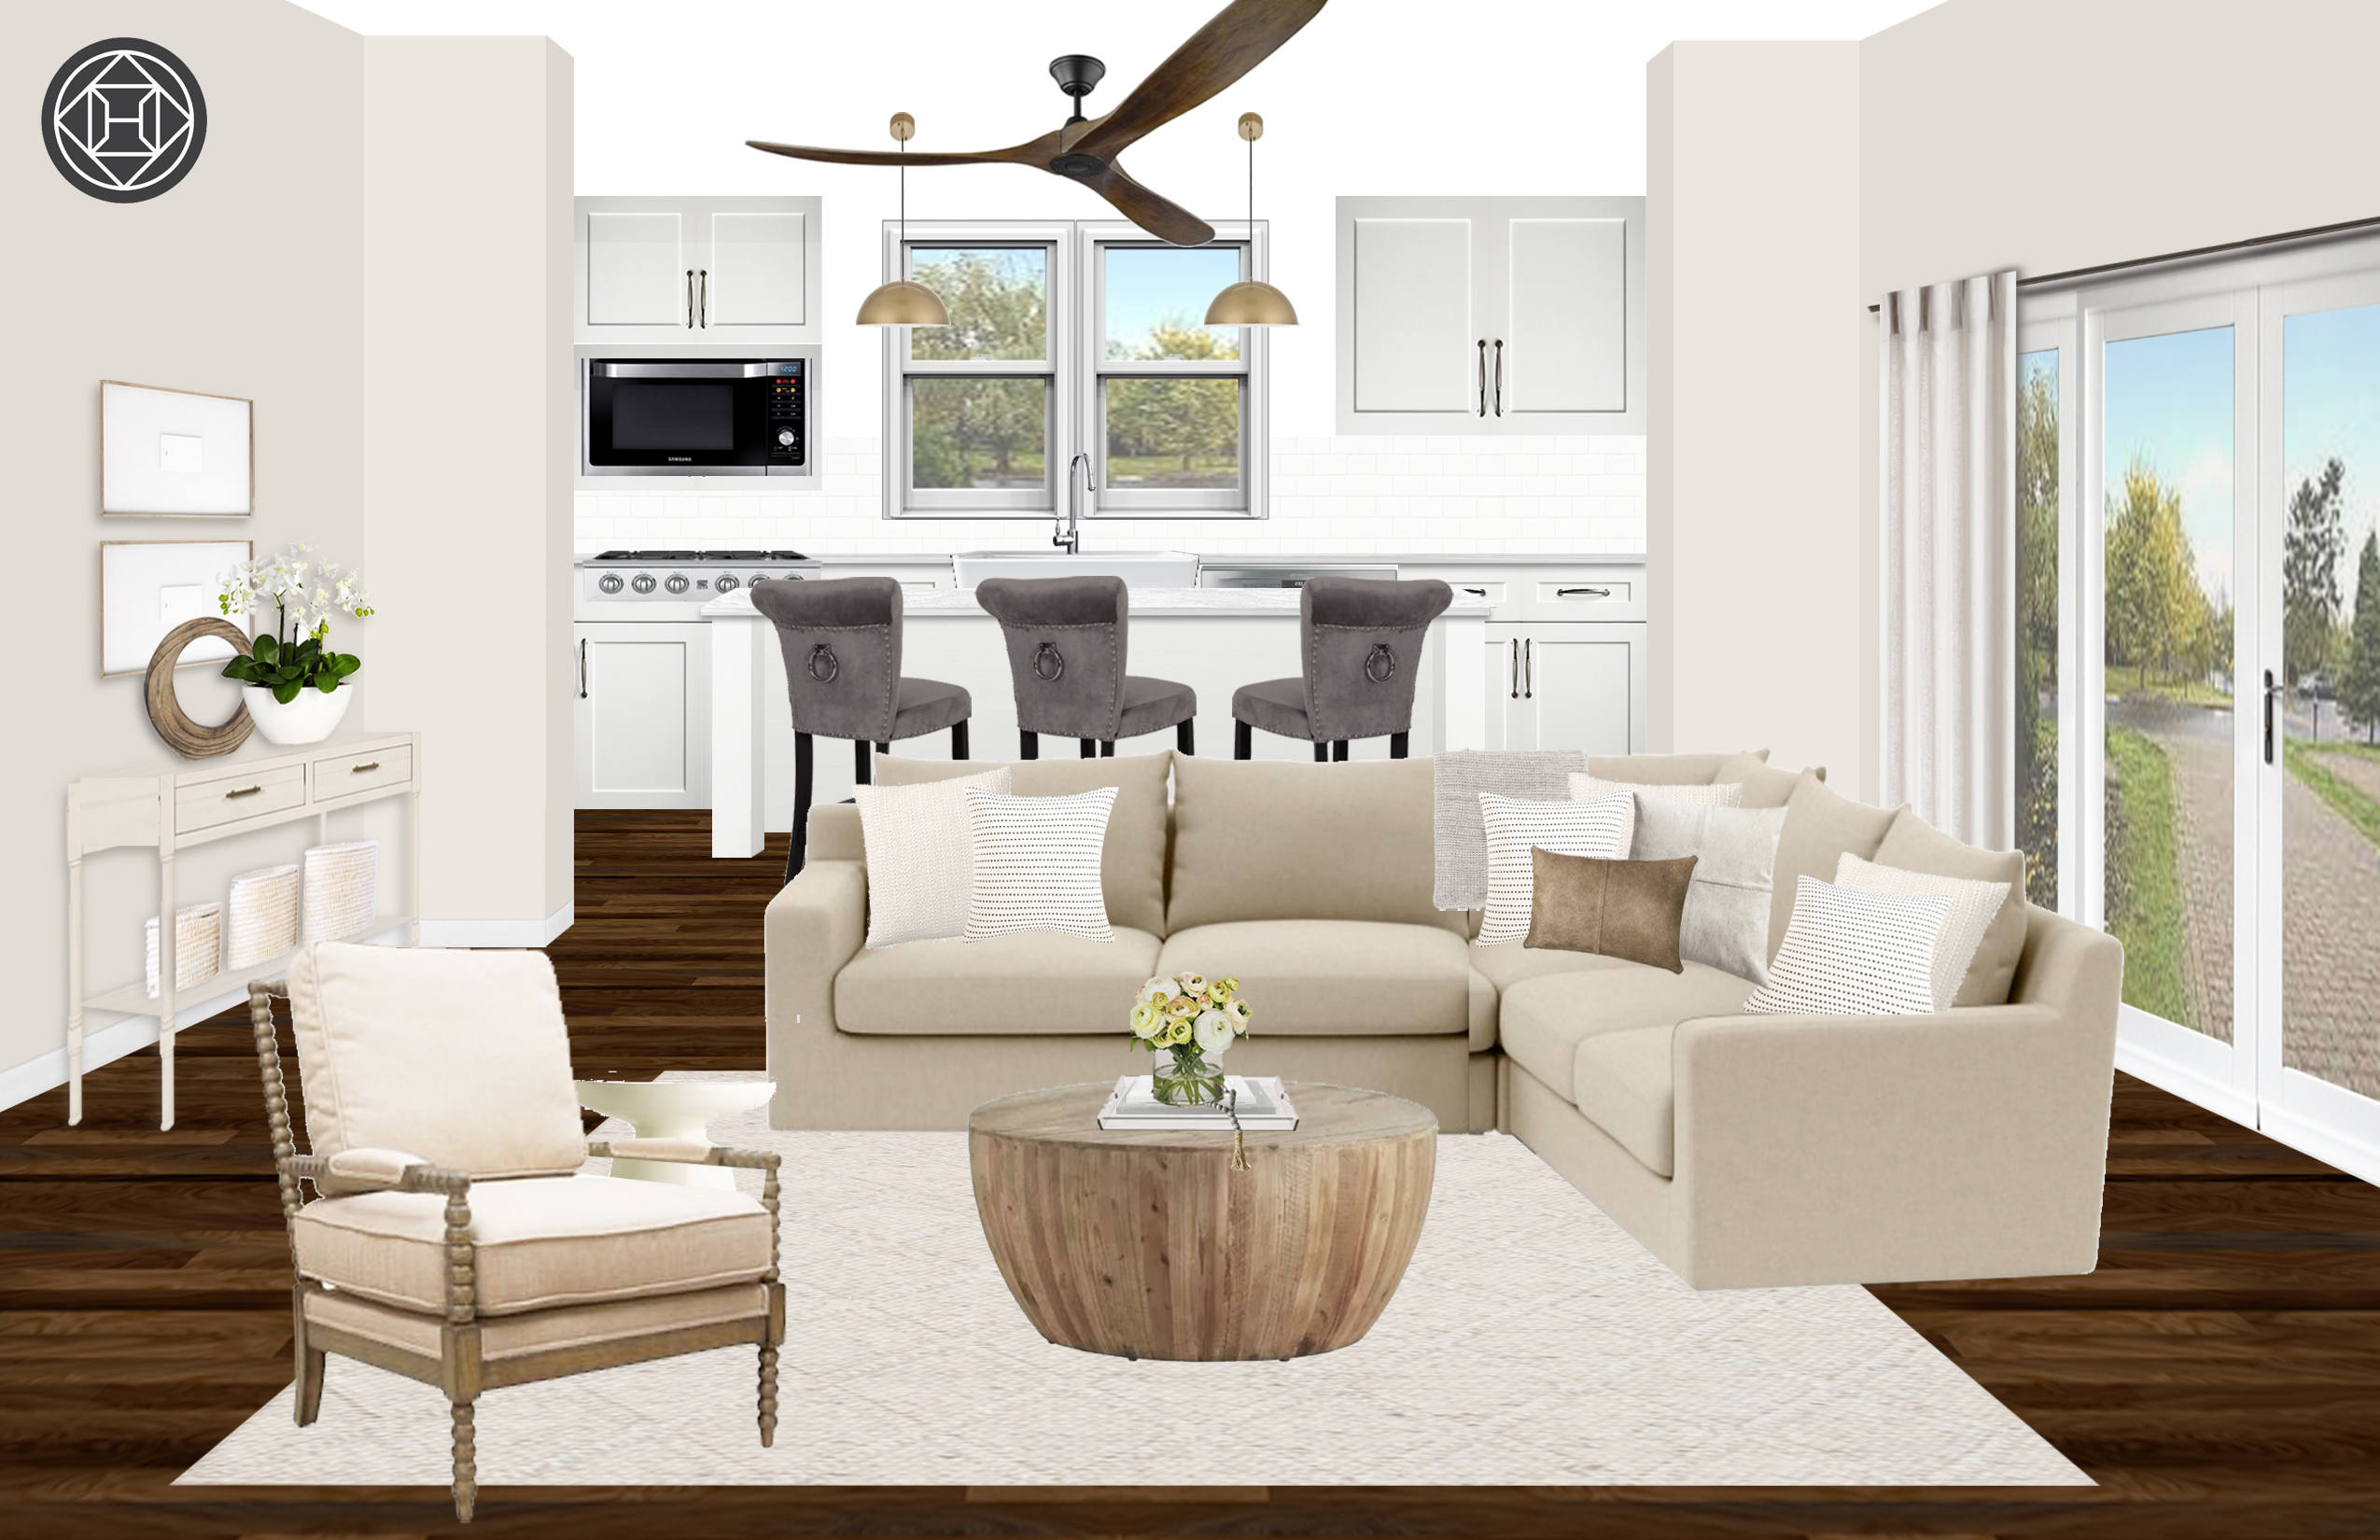 Modern Rustic Transitional Living Room Design By Havenly